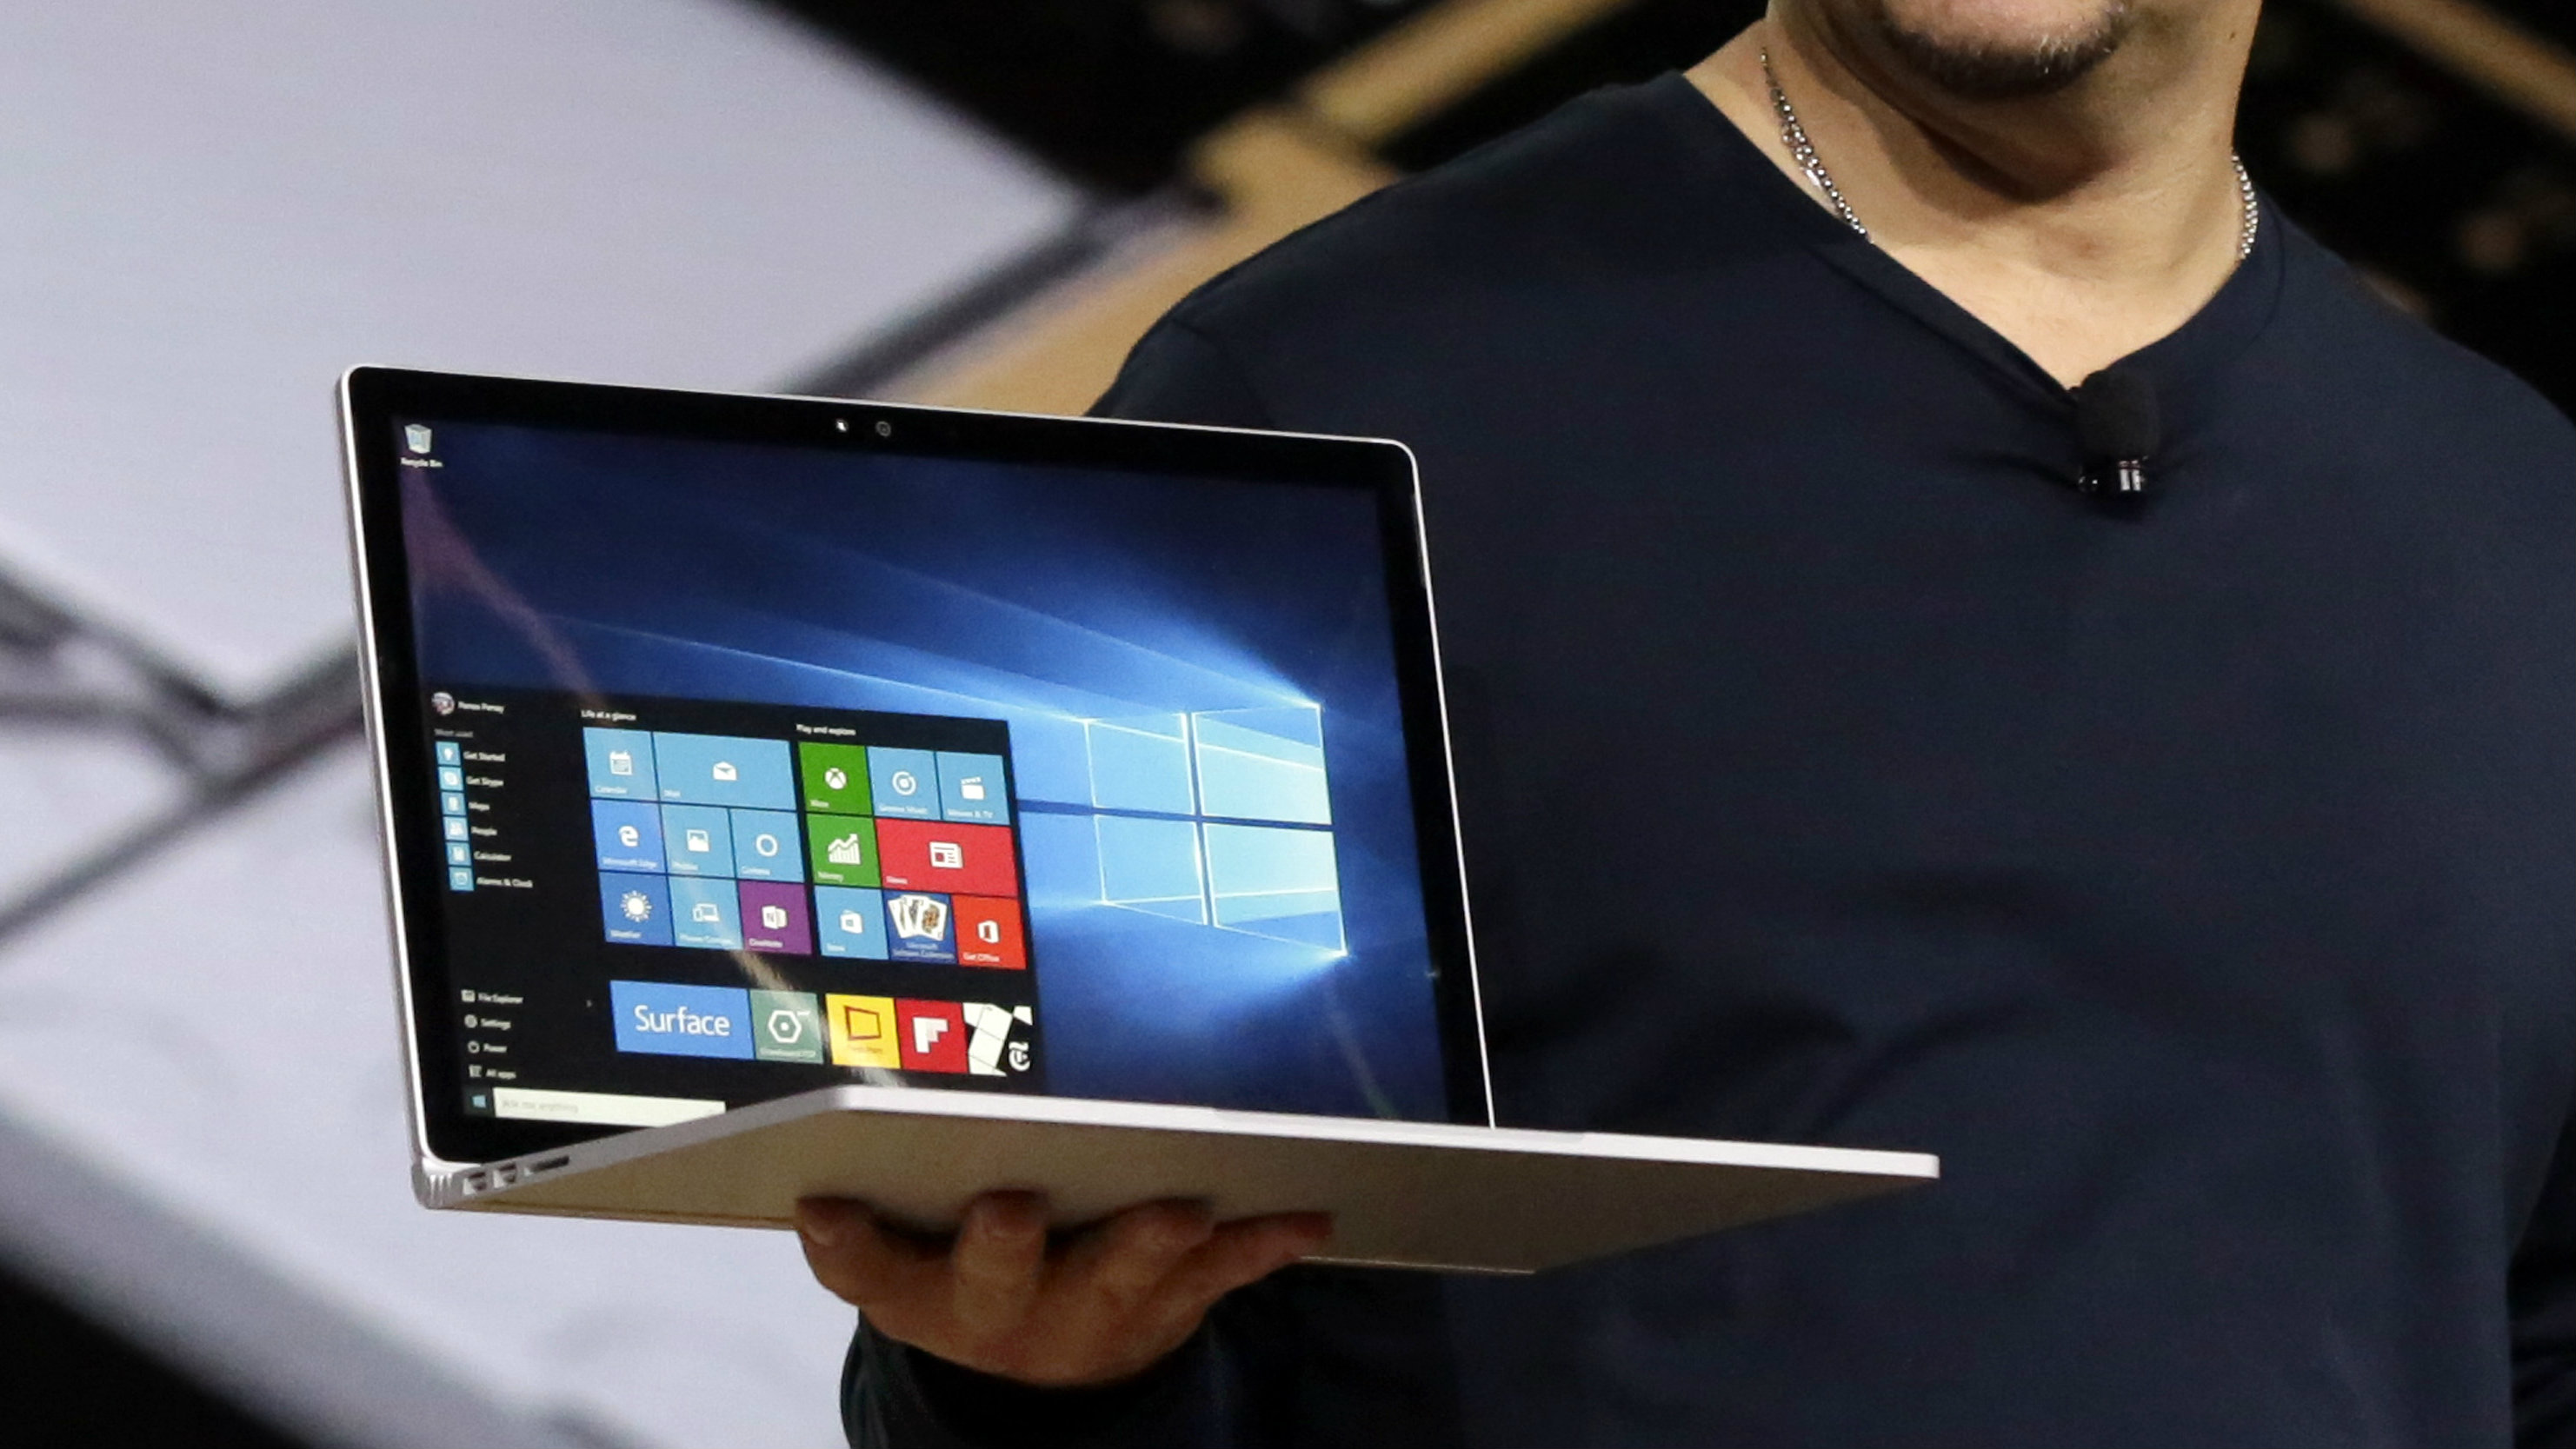 Microsoft vice president for Surface Computing Panos Panay holds a Surface Book laptop during a presentation, in New York, Tuesday, Oct. 6, 2015. Microsoft says it's for scientists, engineers and gamers who need a lot more performance than a tablet. (AP Photo/Richard Drew)